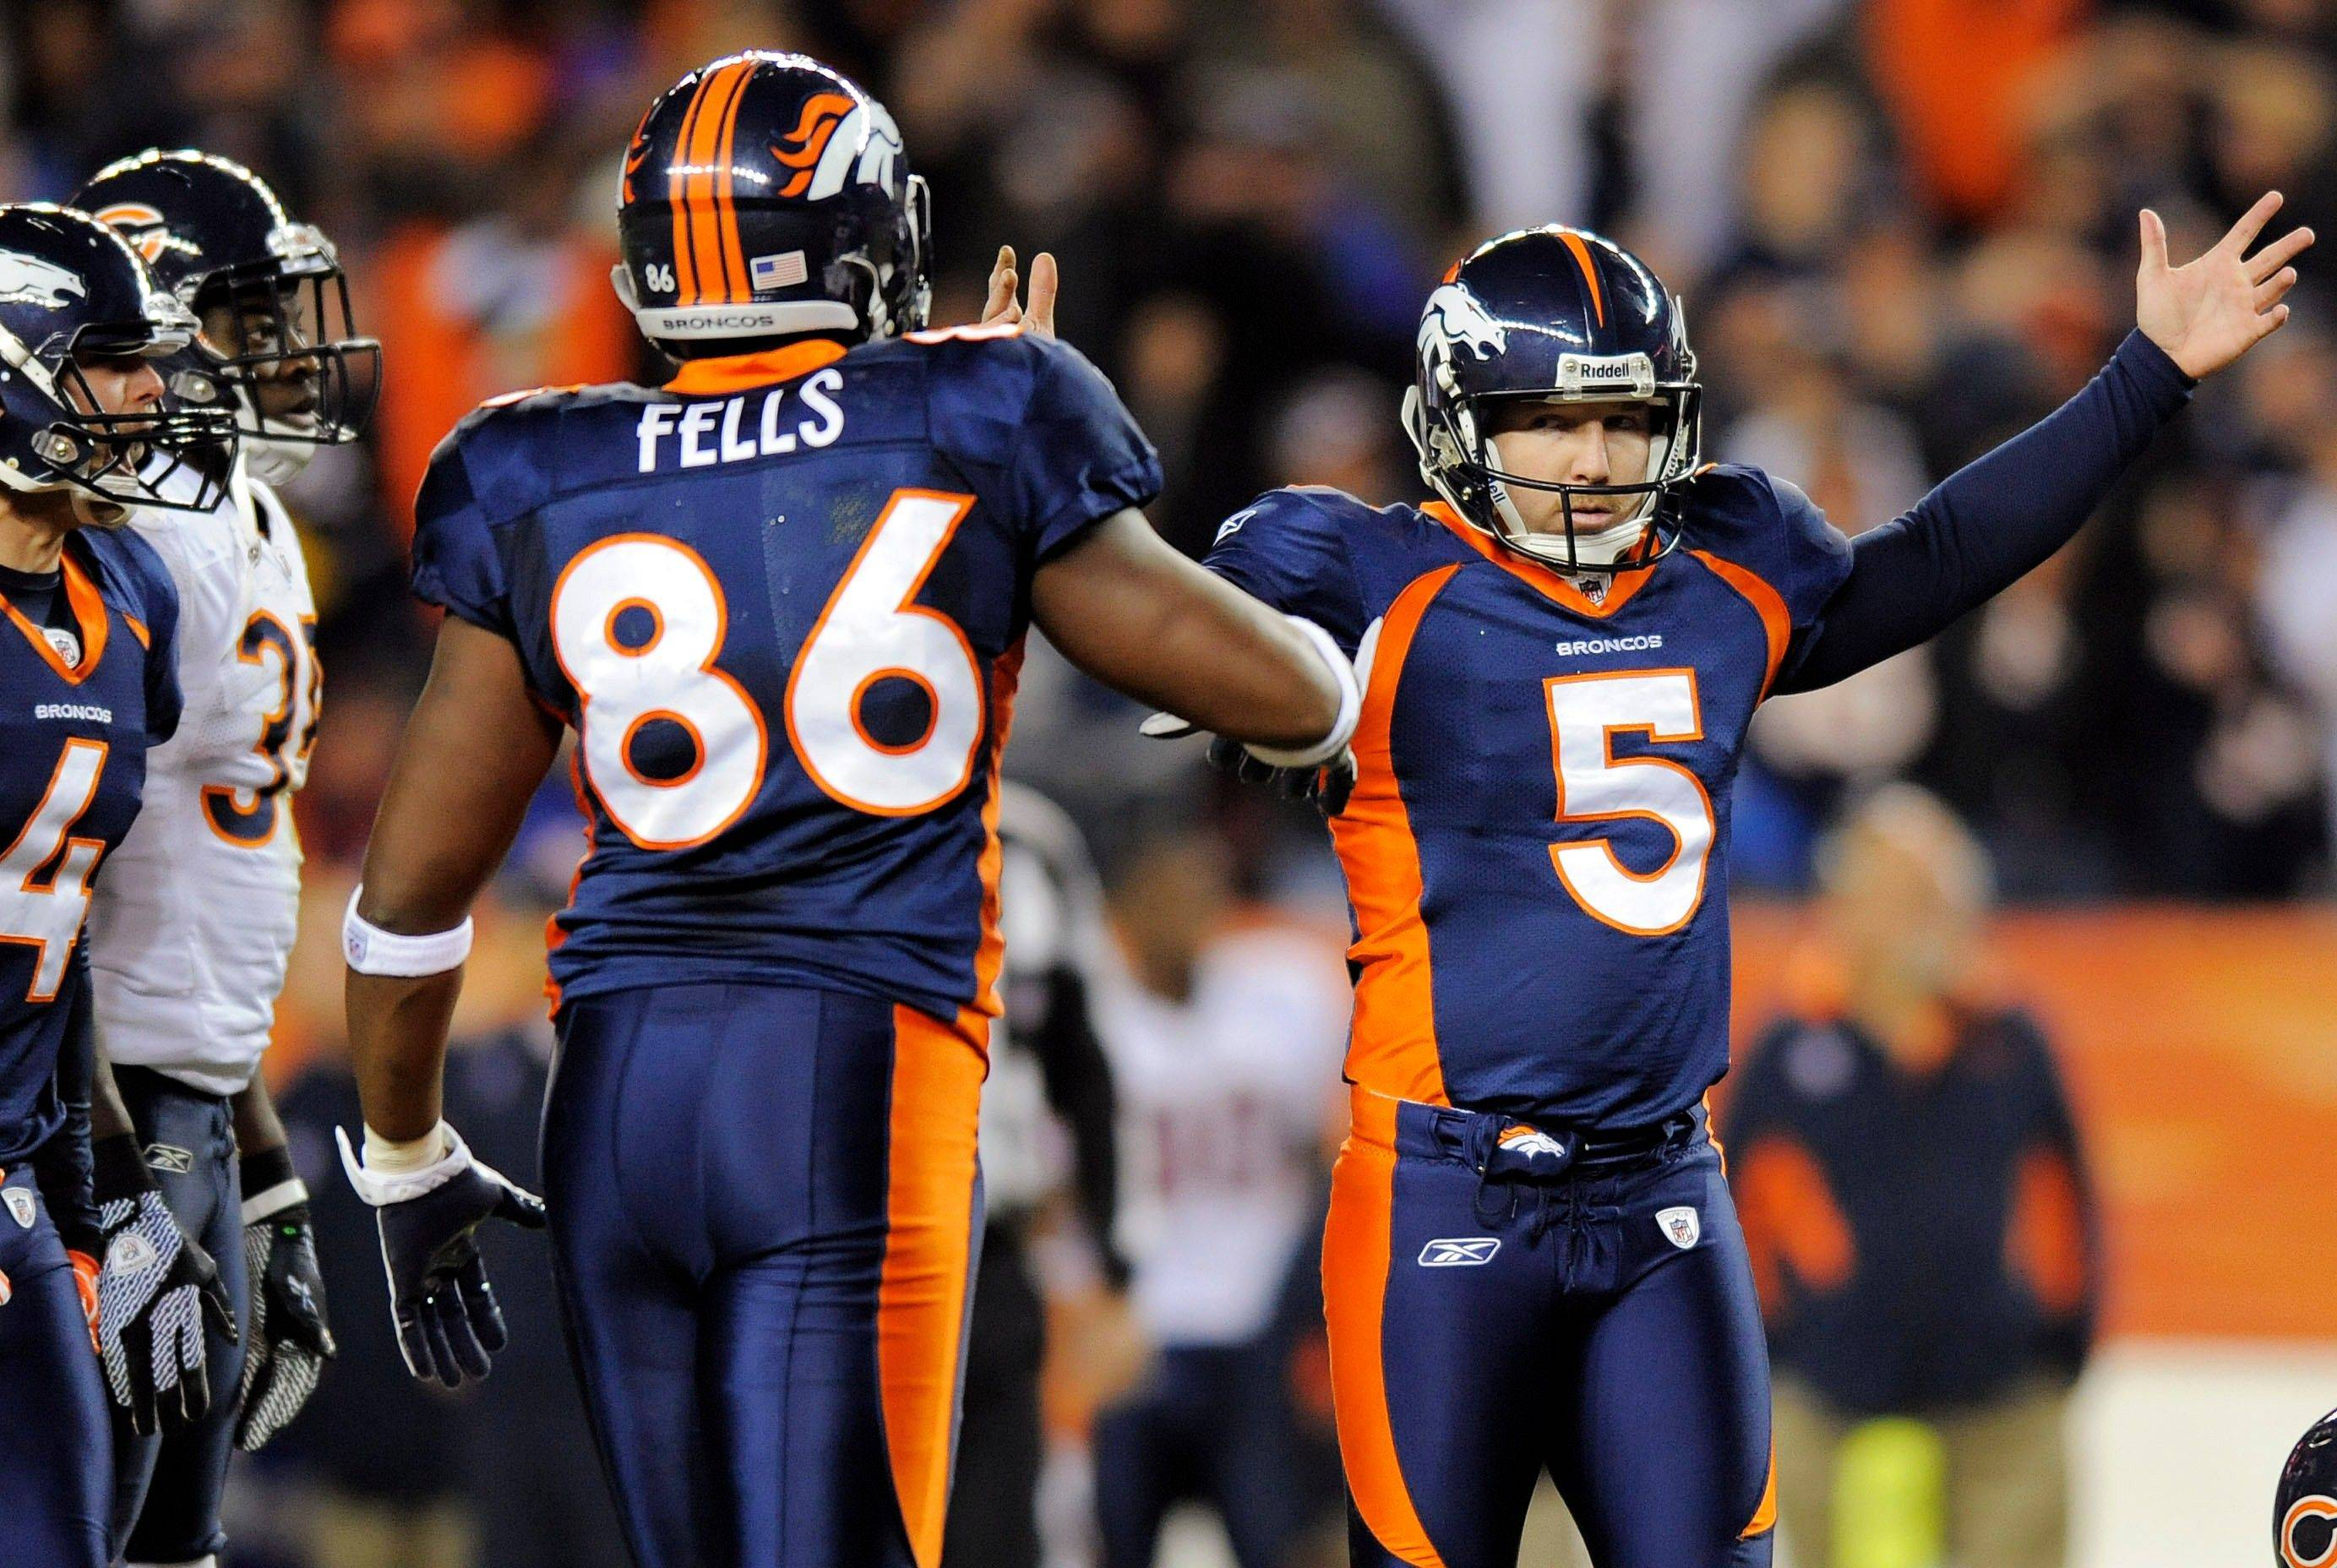 Denver Broncos kicker Matt Prater (5) reacts as his 59-yard field goal attempt with 8 seconds remaining in the fourth quarter goes through the uprights.